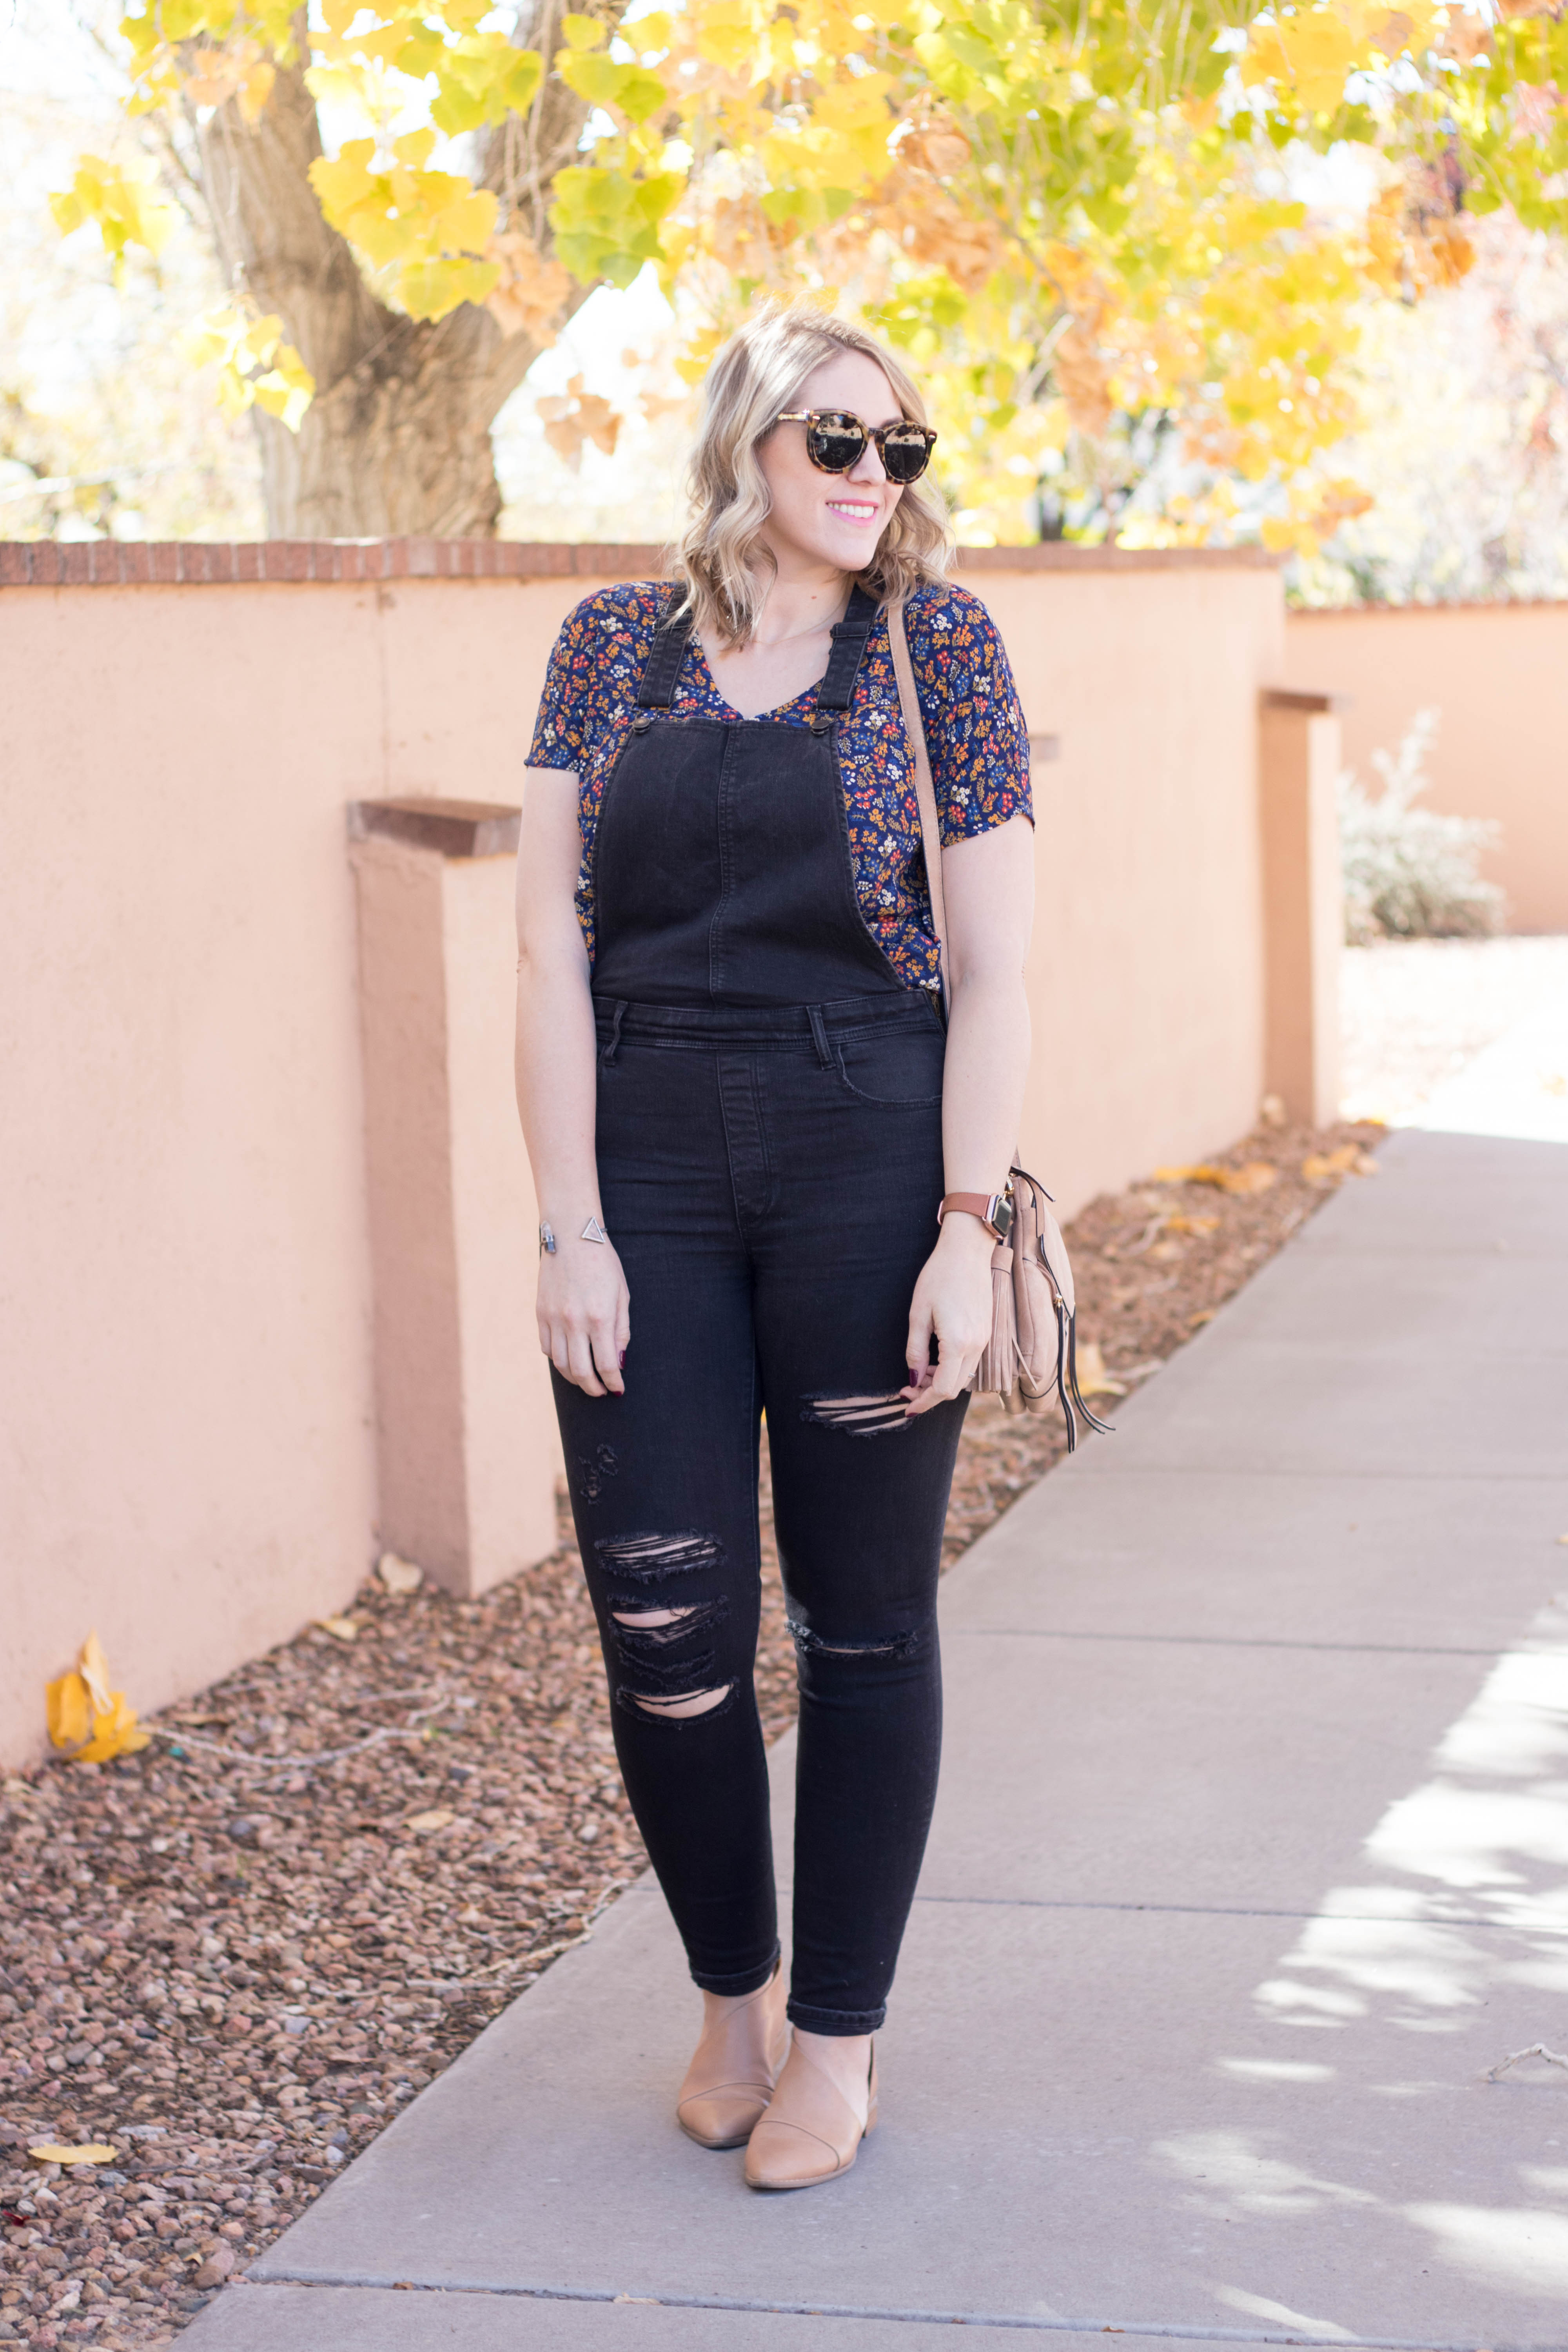 black overalls for fall outfit #fallstyle #fallfashion #madewell